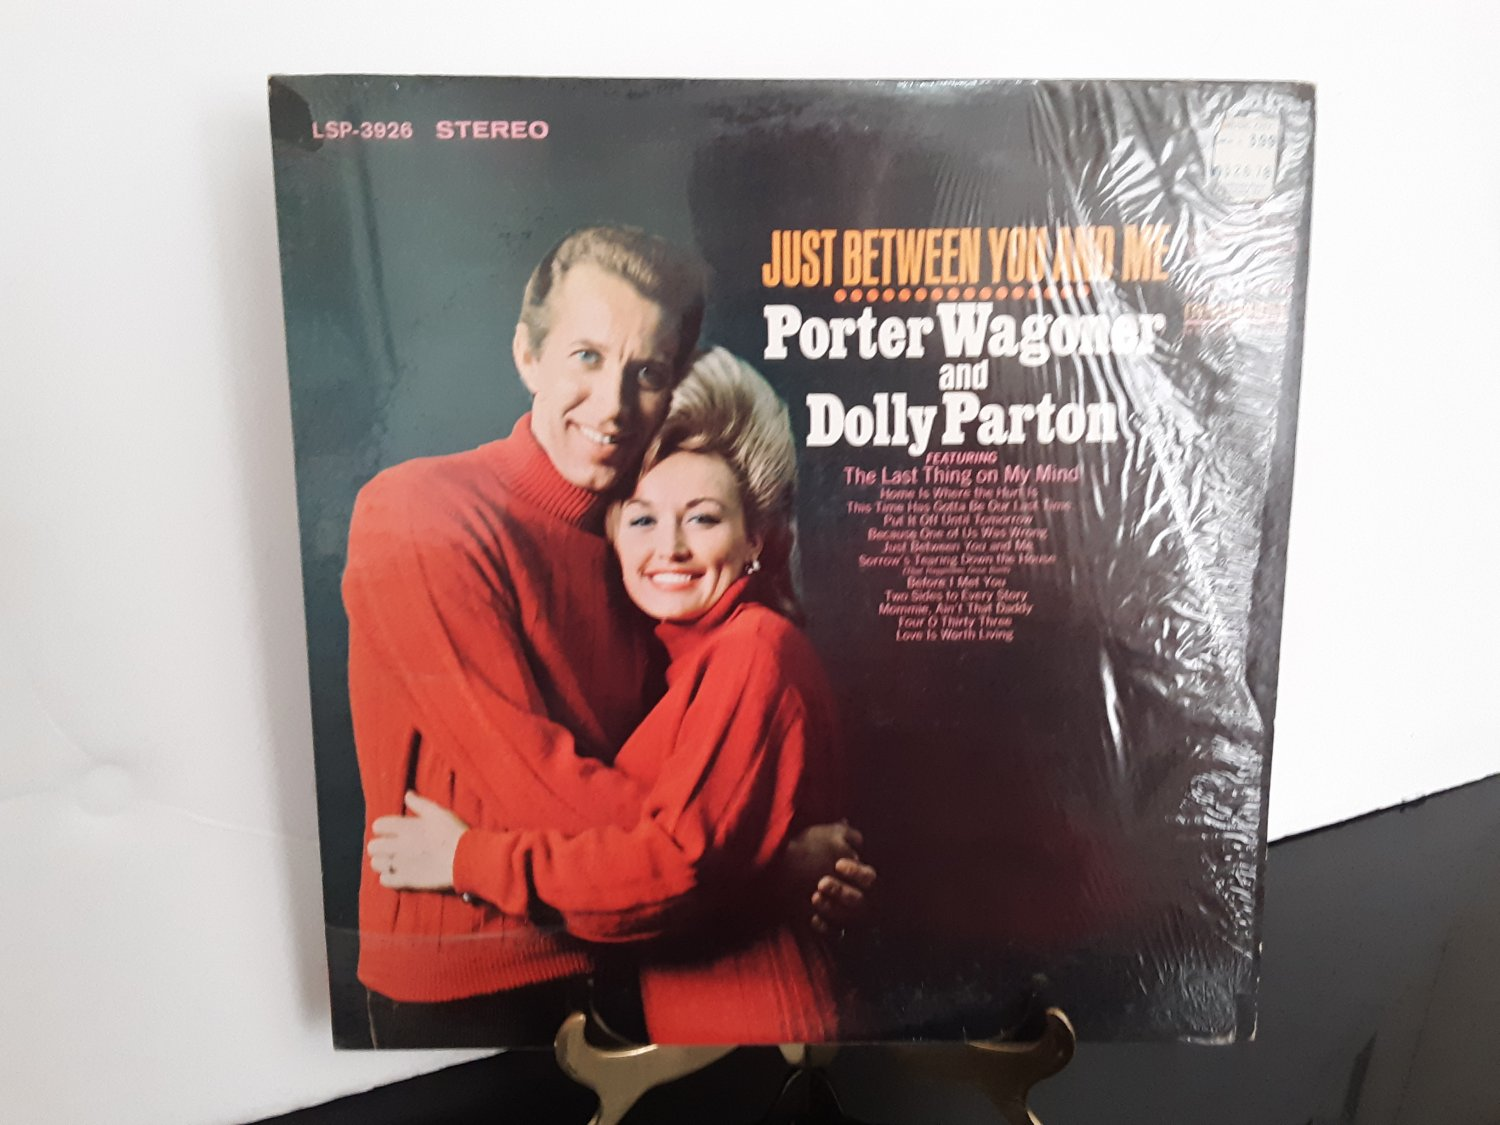 Dolly Parton & Porter Wagoner - Just Between You And Me - Circa 1968